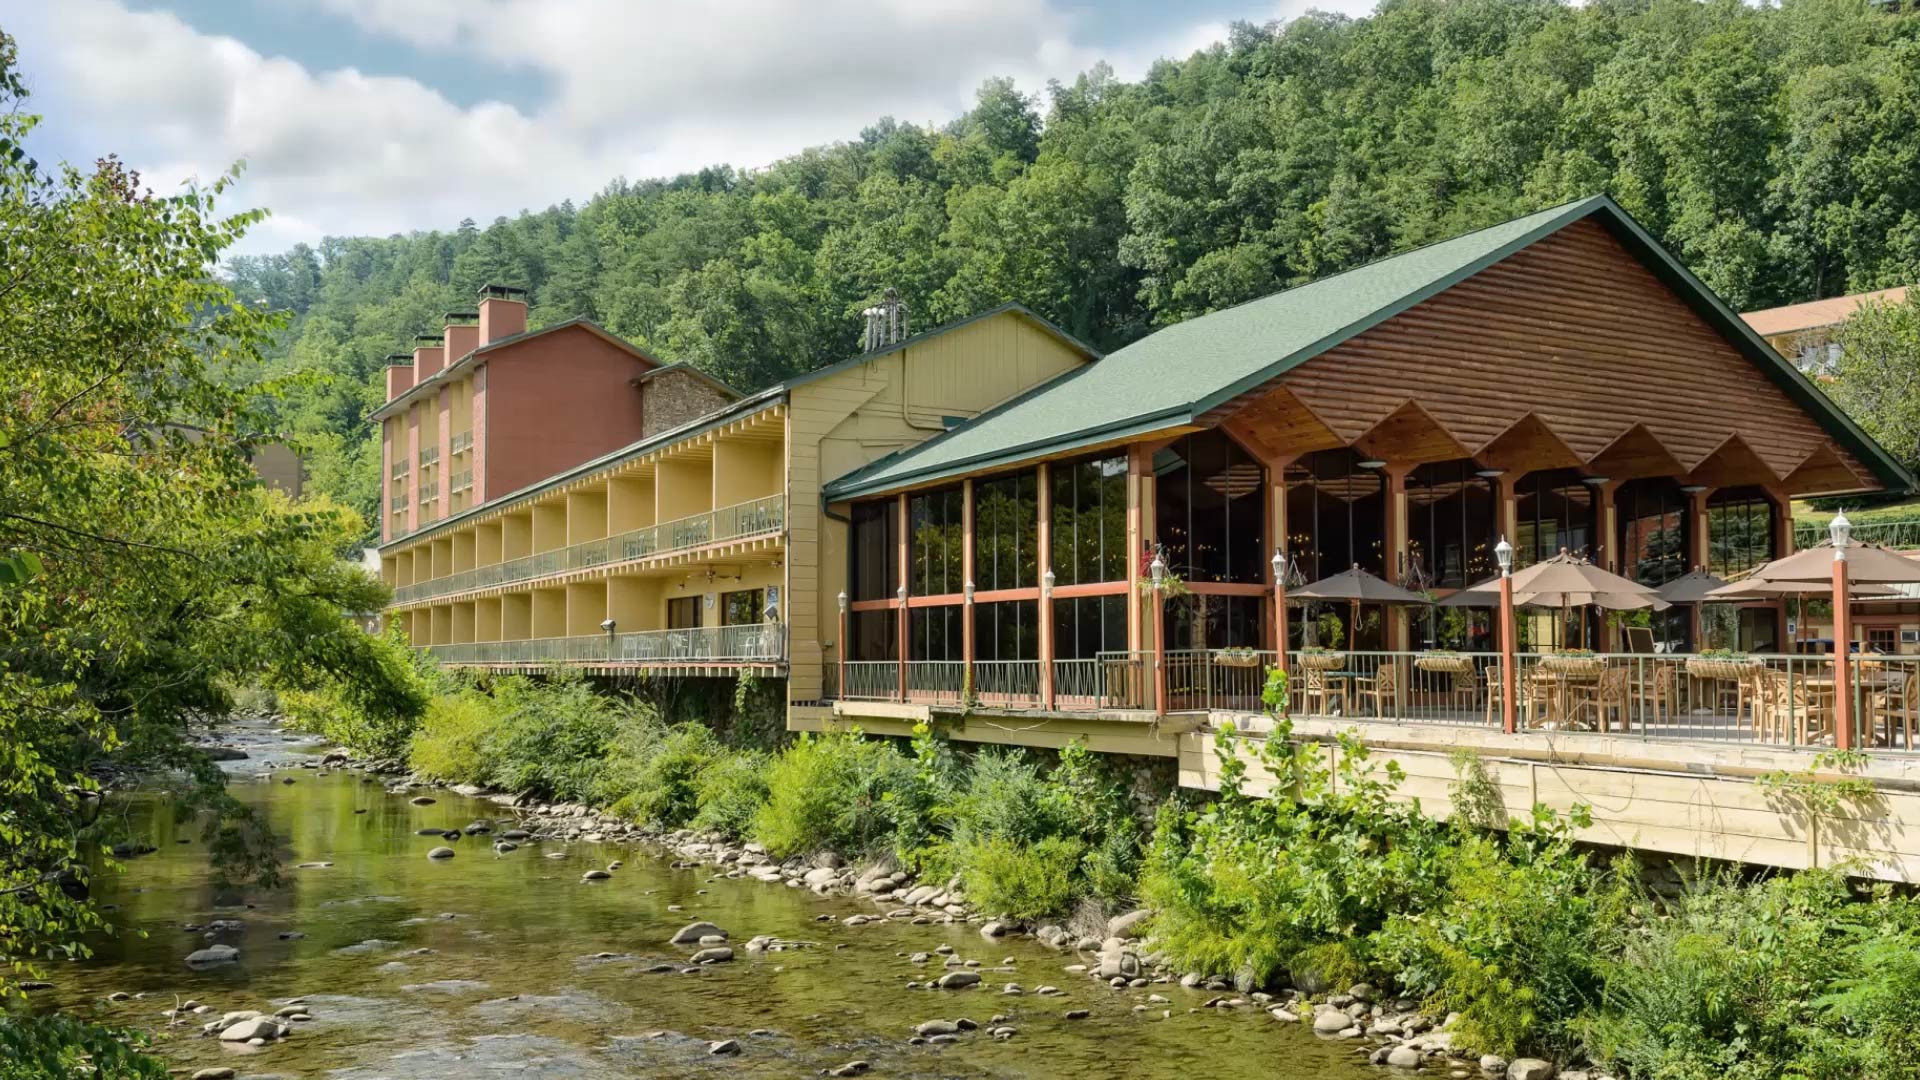 Overlooking the scenic Little Pigeon River, the River Terrace Resort and Gatlinburg Convention Center lies in the heart of downtown Gatlinburg and offers guests comfortable accomodations, all within minutes of Great Smoky Mountains National Park.